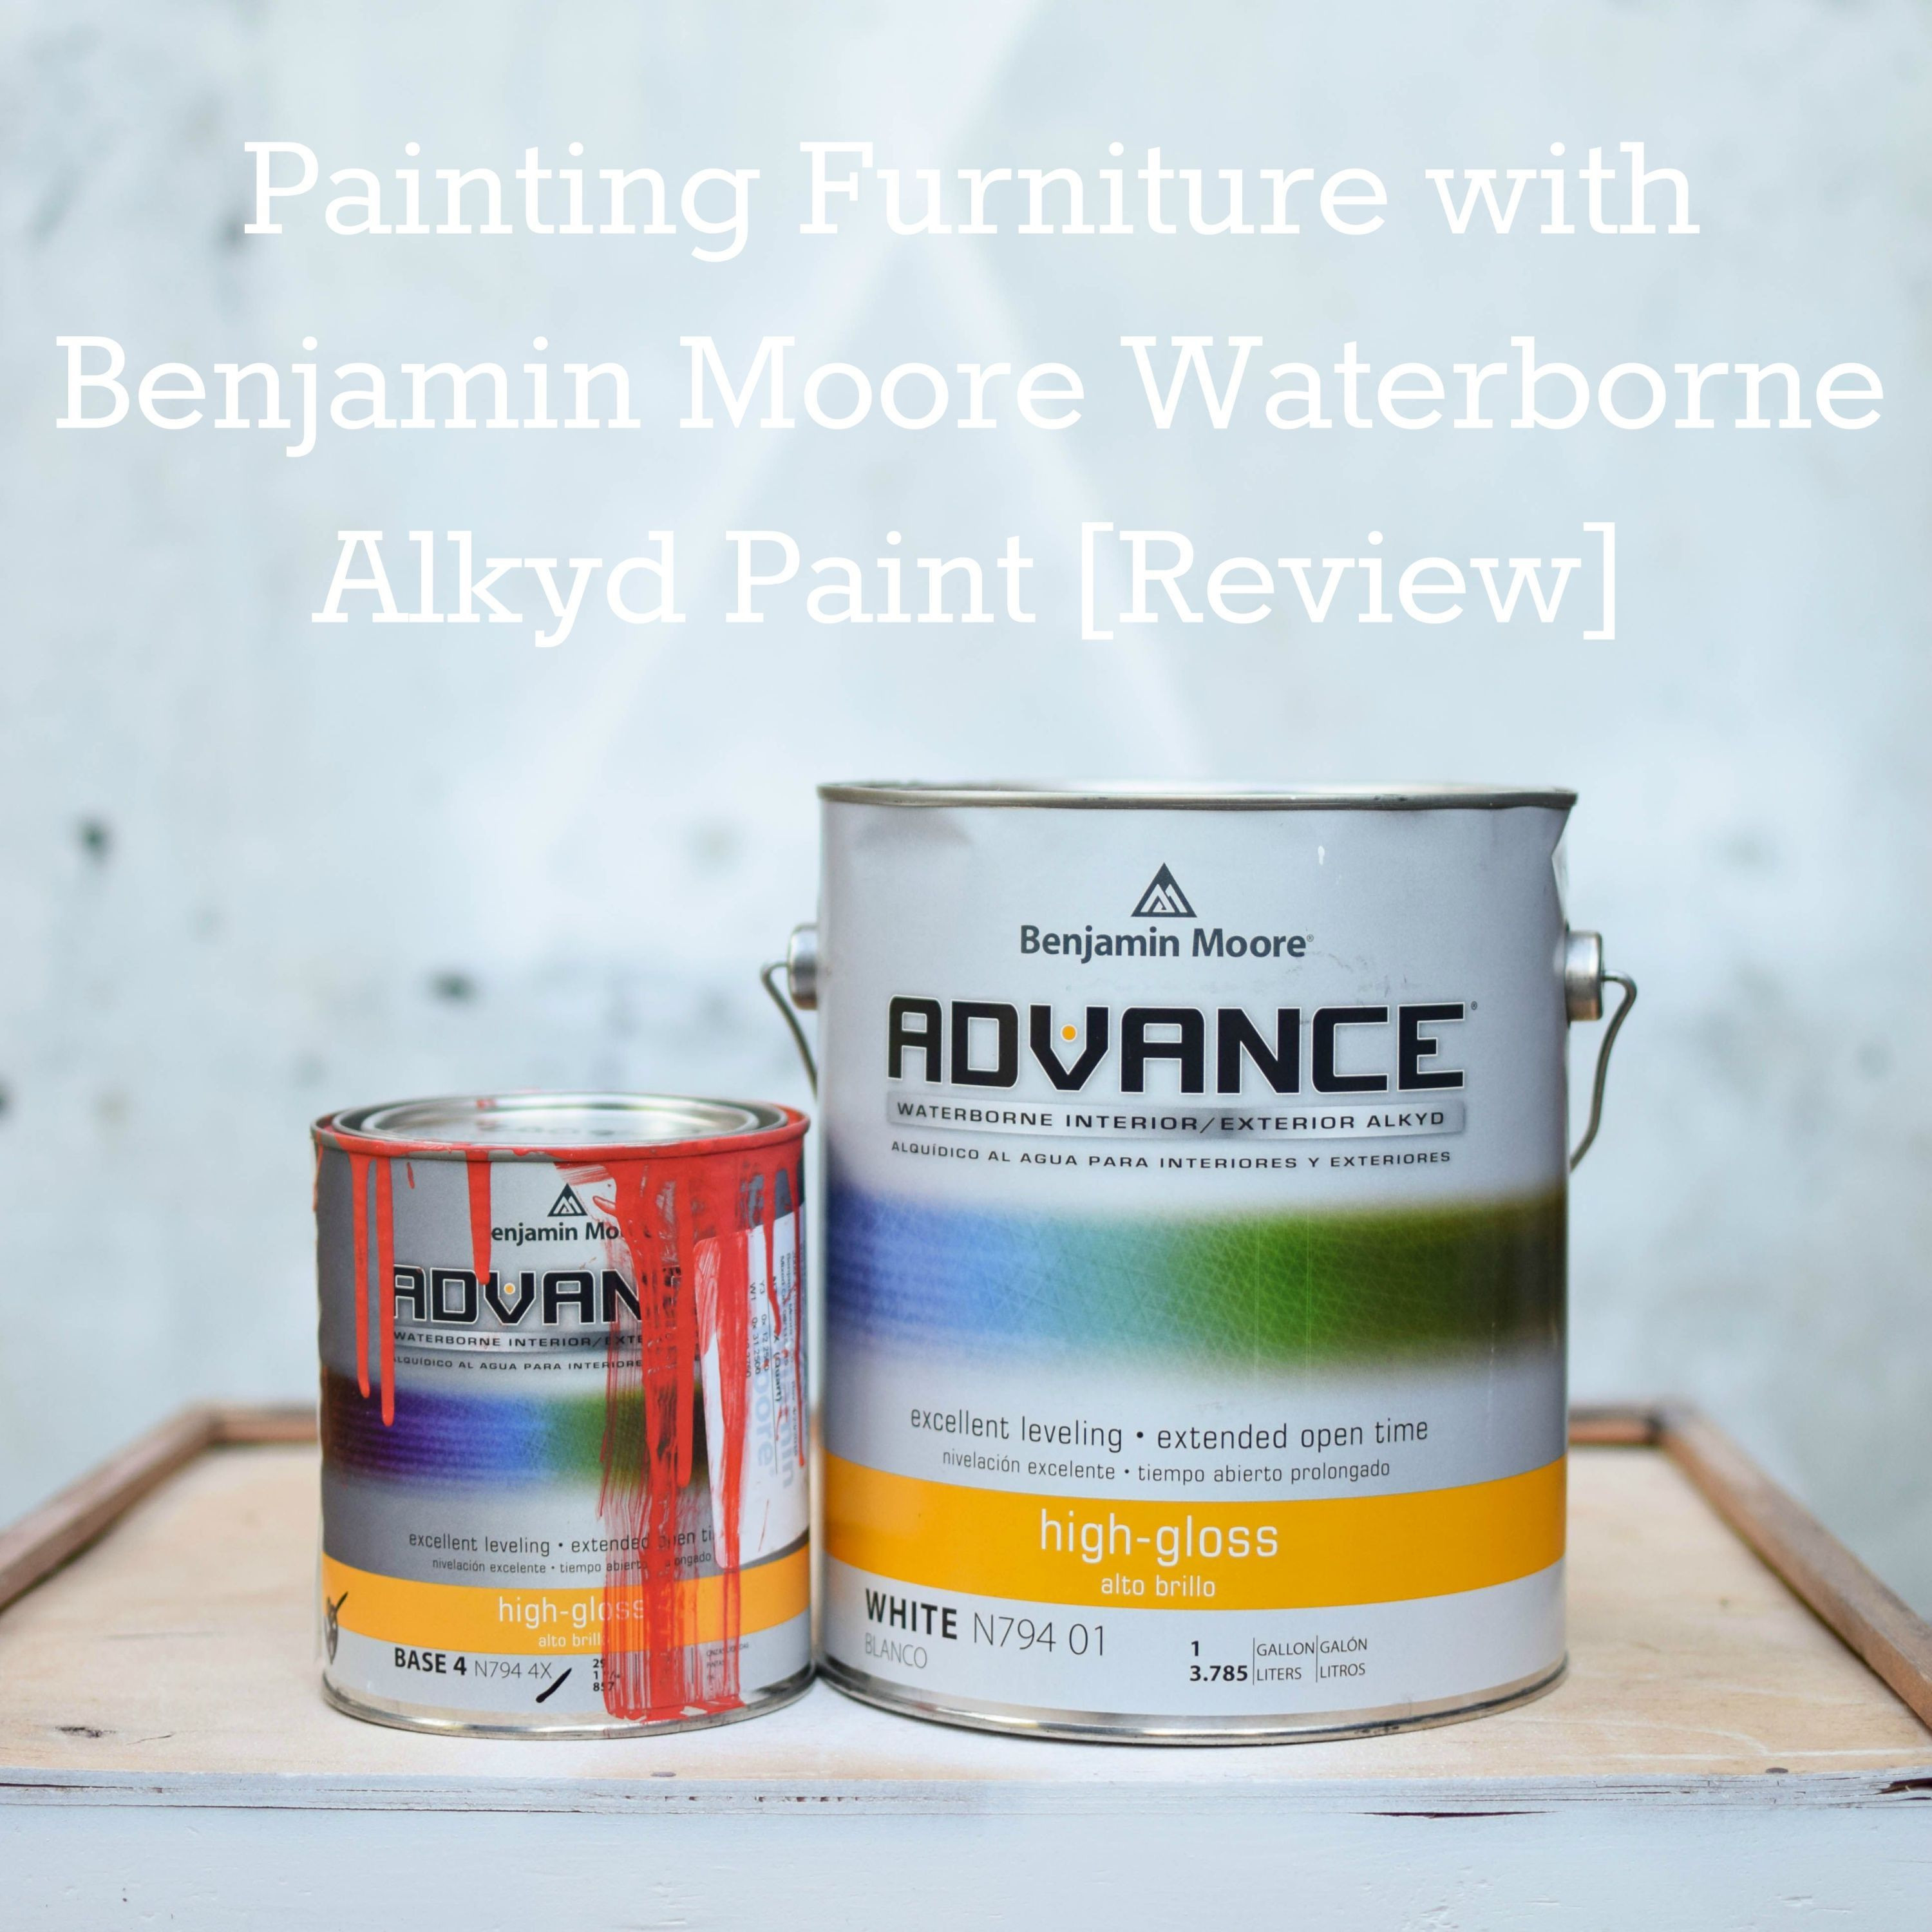 spray paint vase of 26 awesome advance waterborne interior alkyd paint blogygrana in advance waterborne interior alkyd paint best of painting furniture with benjamin moore advance waterborne alkyd